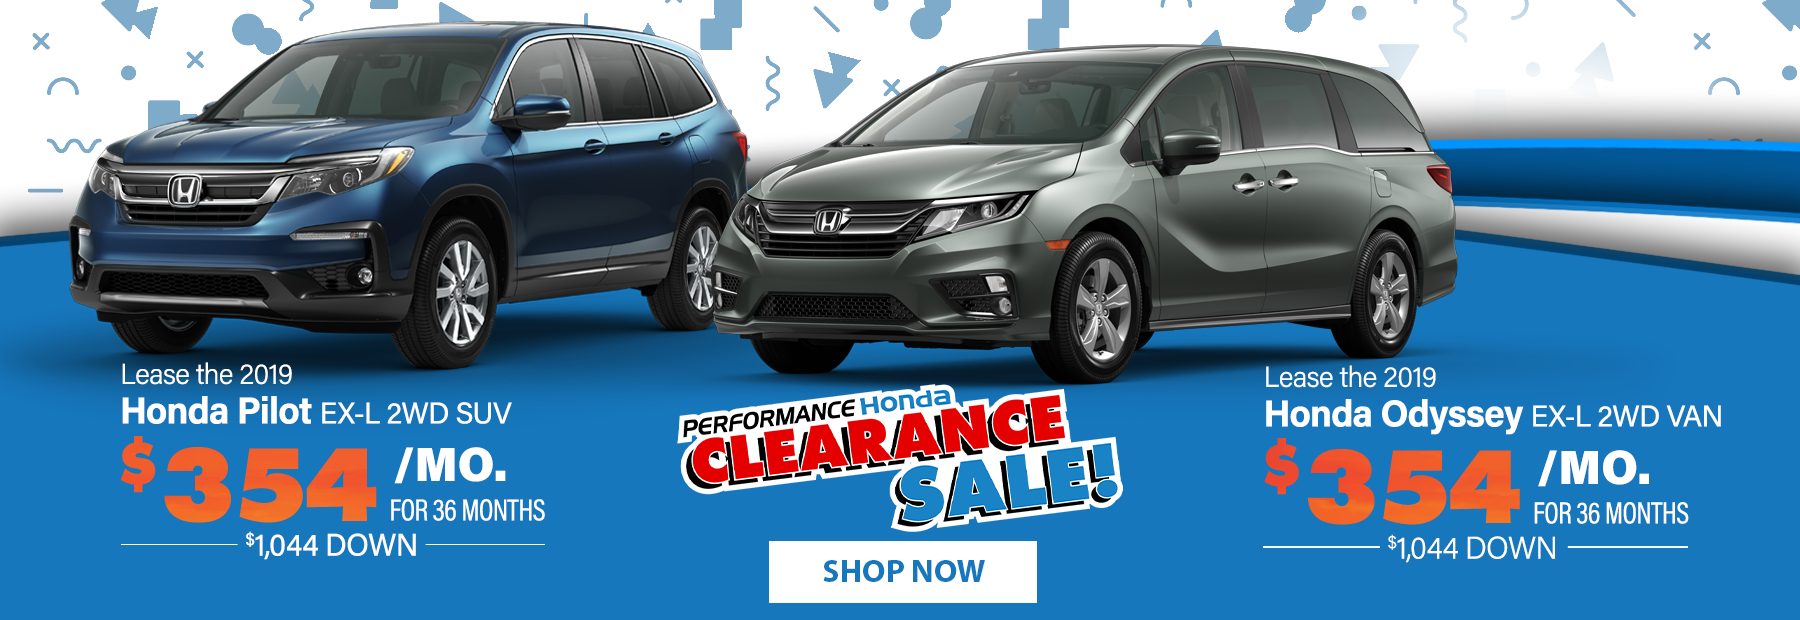 Princeton Honda Service >> Performance Honda New Honda Sales Service Route 4 In